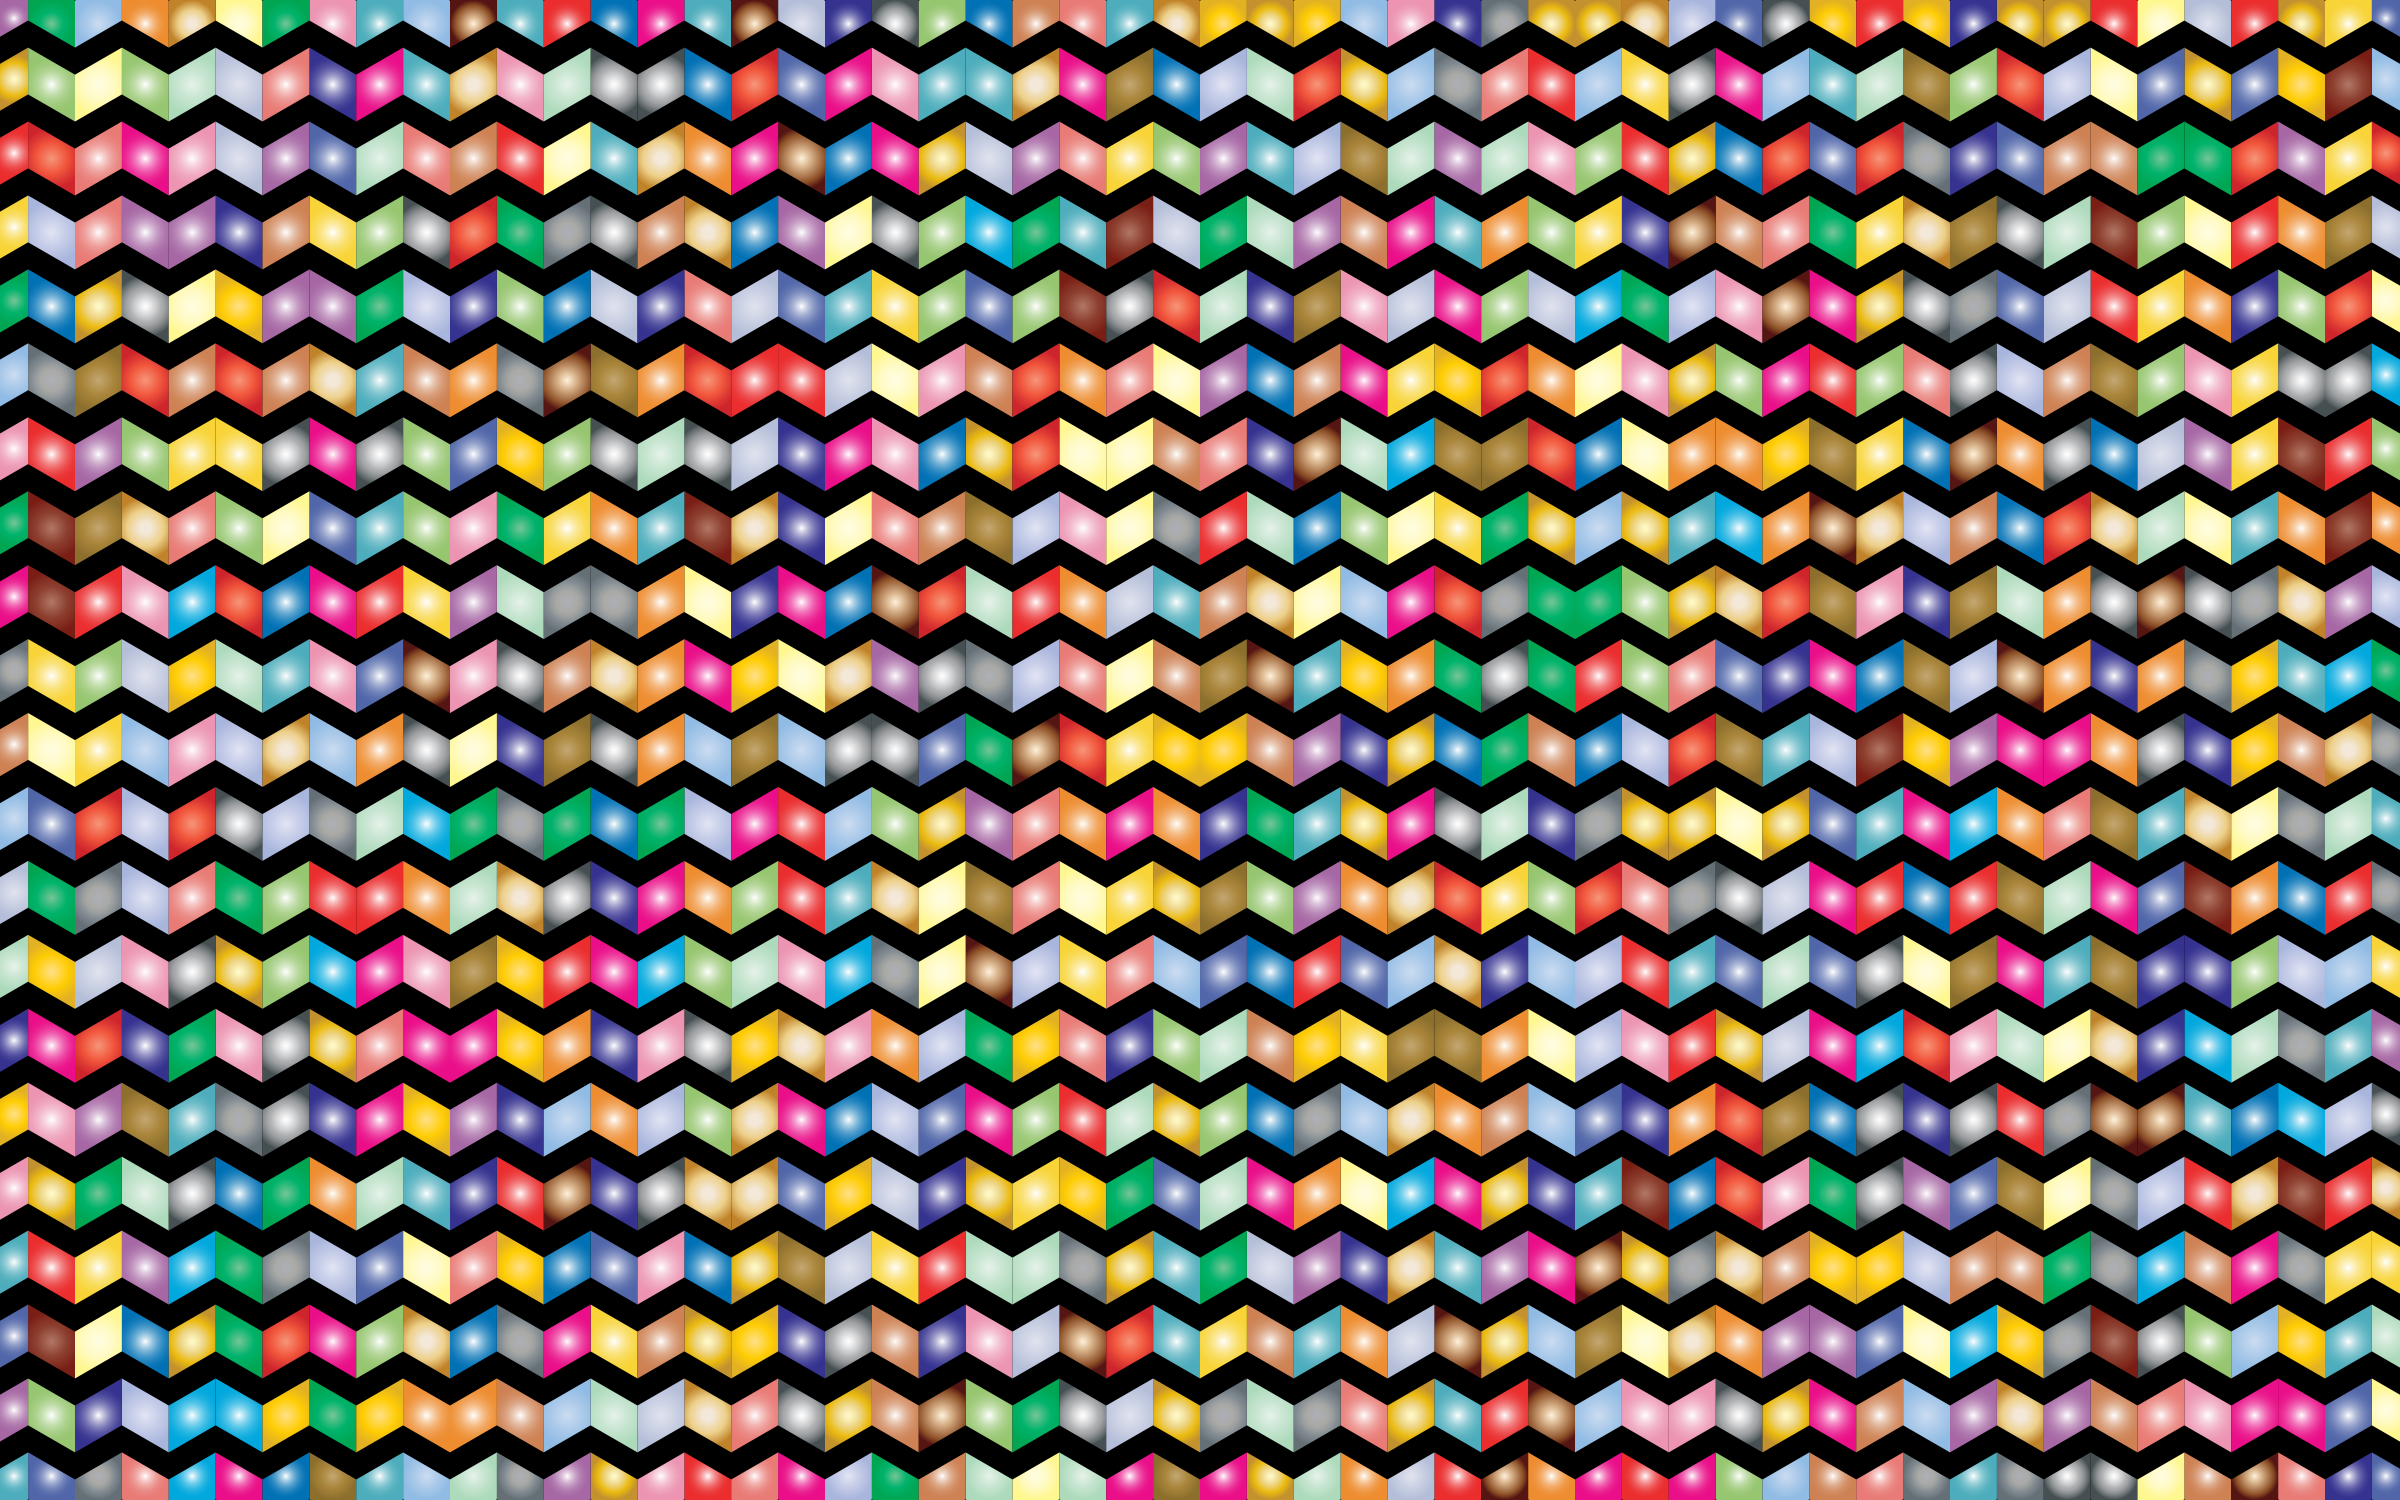 Prismatic Chevrons Pattern 2 With Background by GDJ